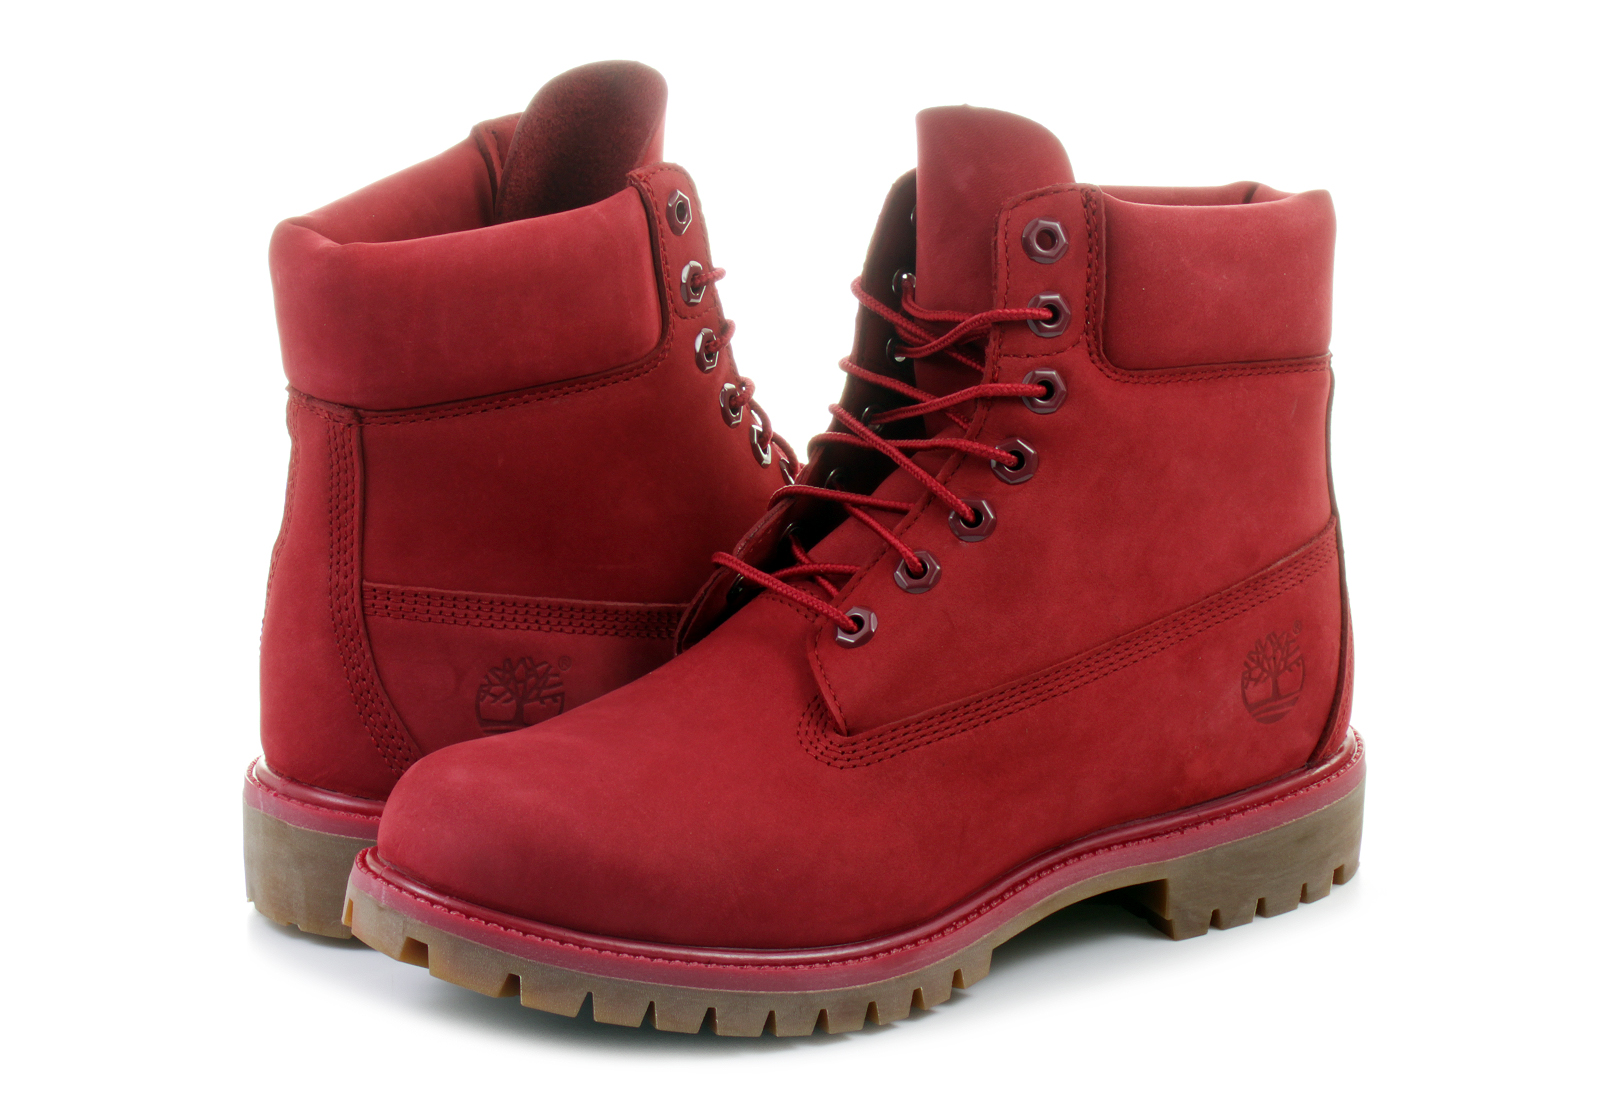 Timberland Usa-made 8 inch bordowe